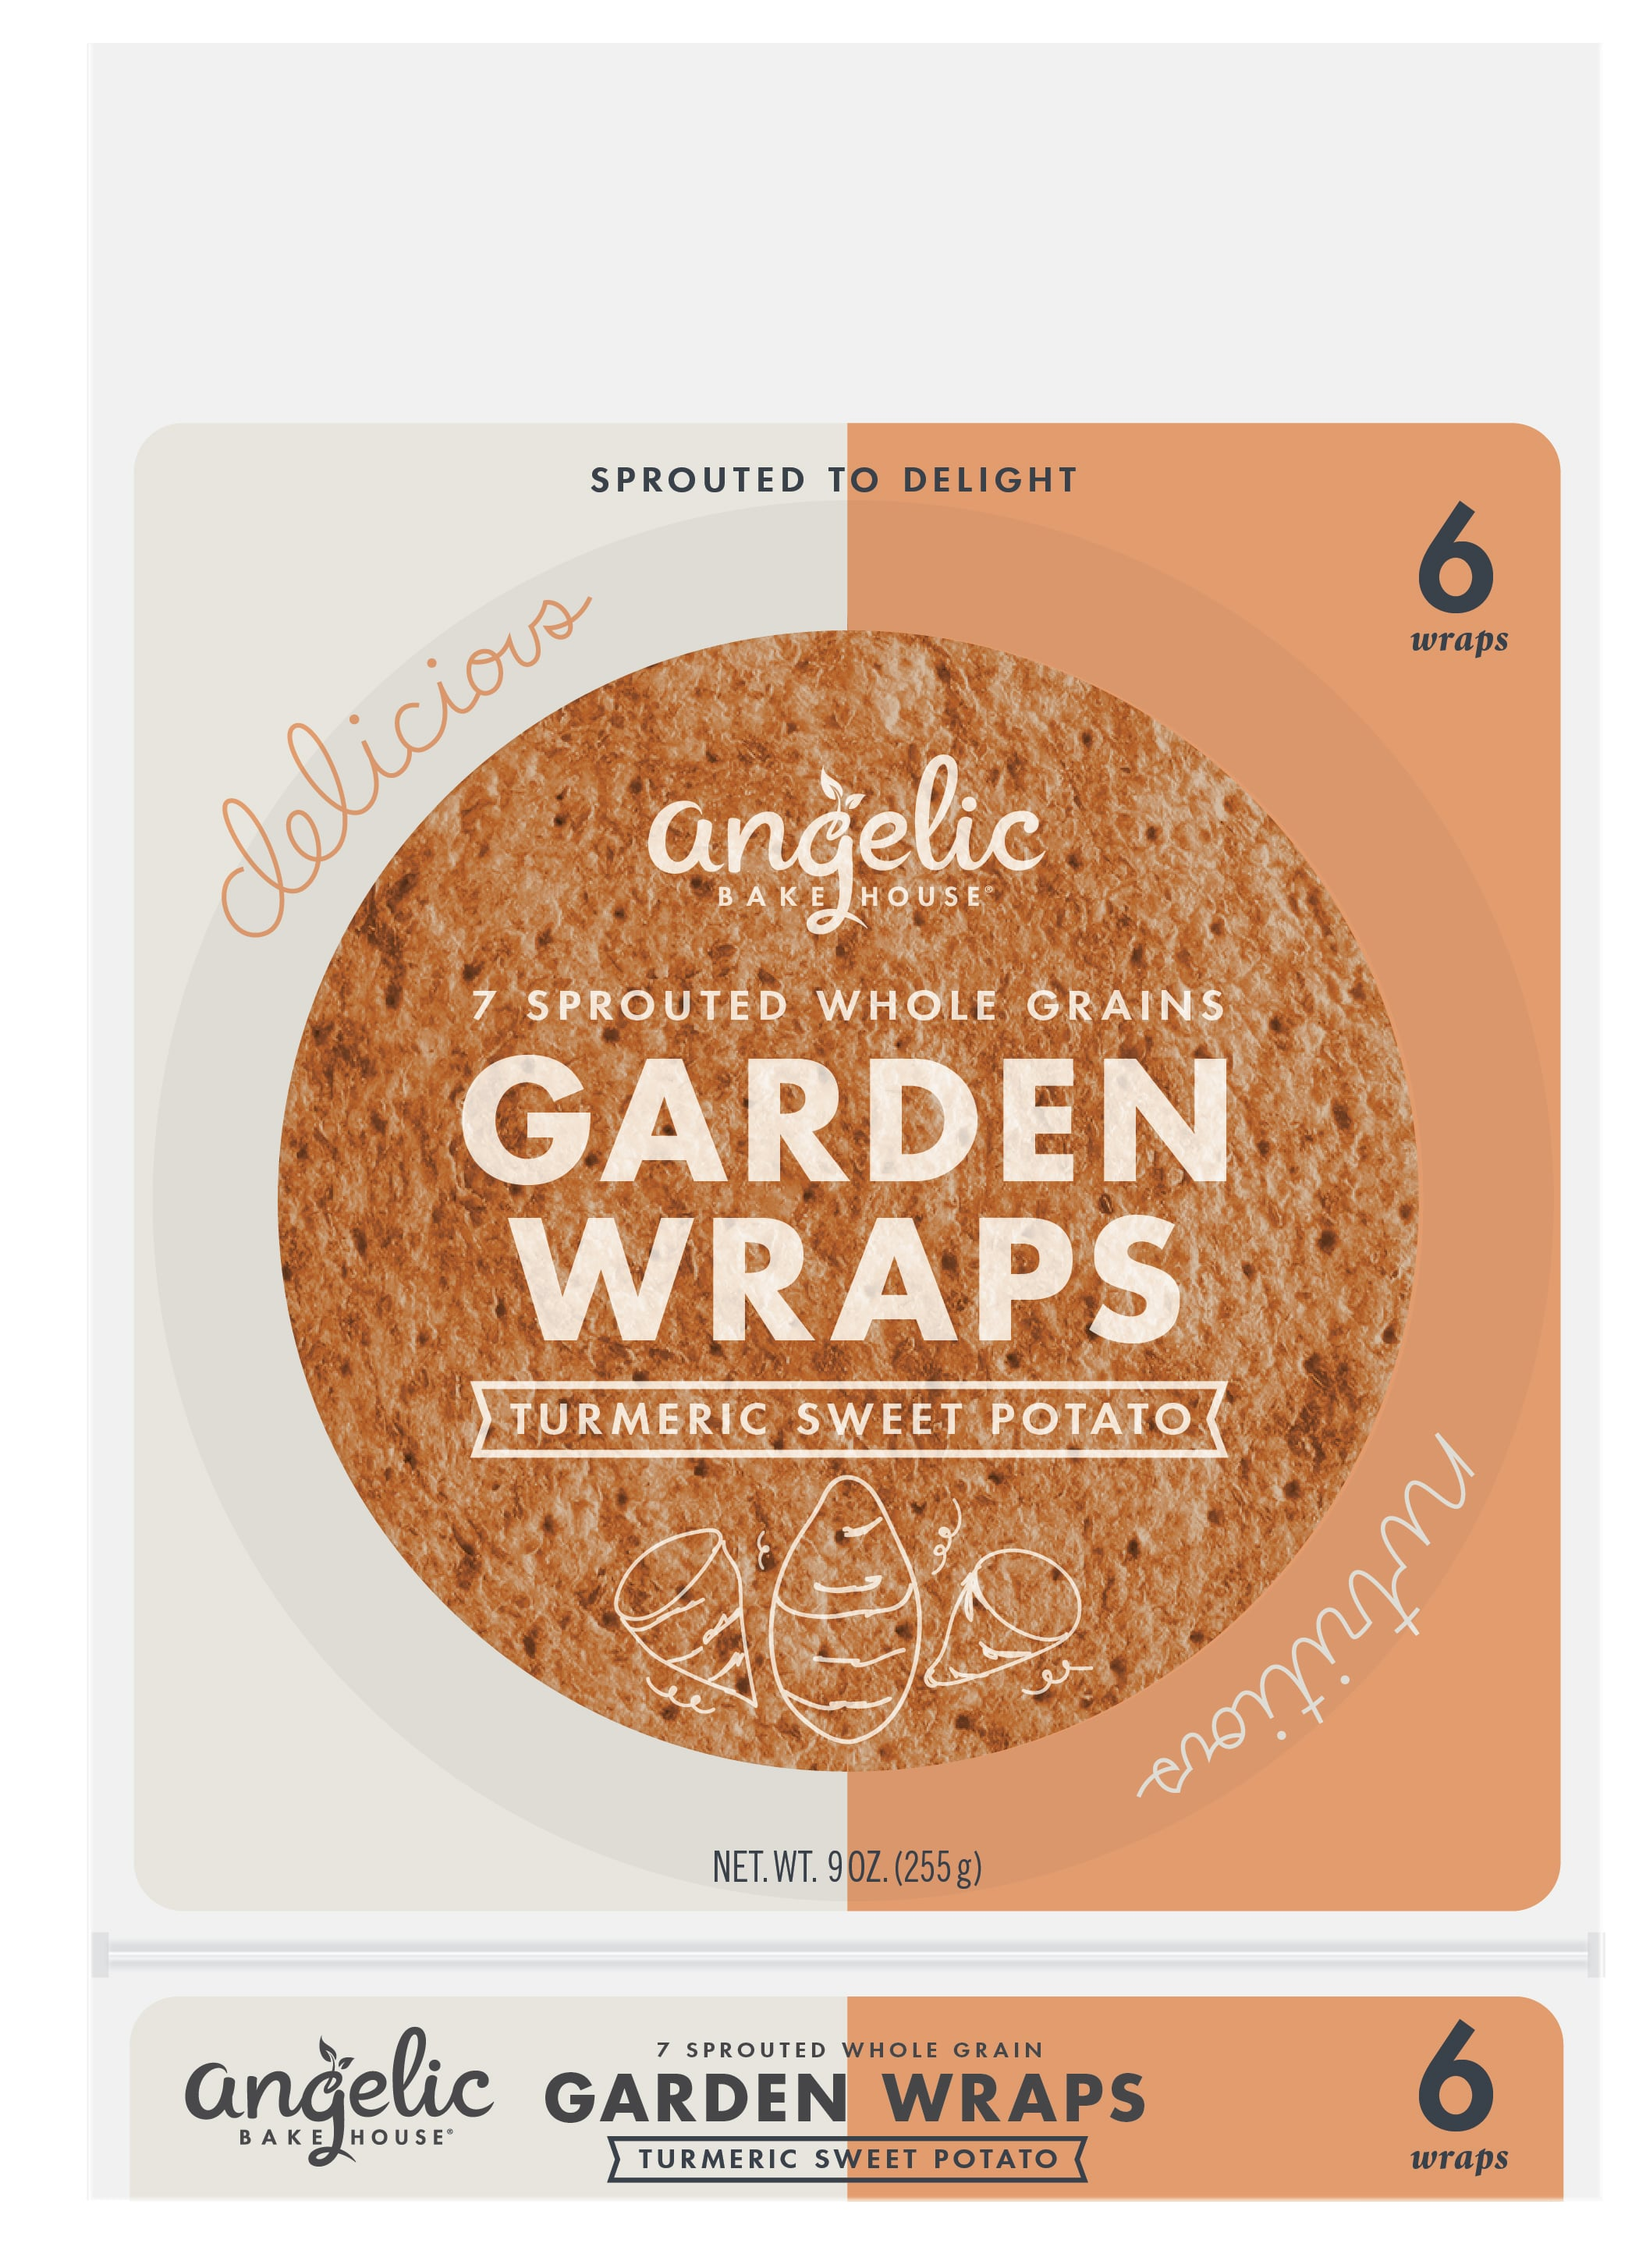 Angelic Bakehouse To Unveil New Packaging, Veggie Wraps at Expo West